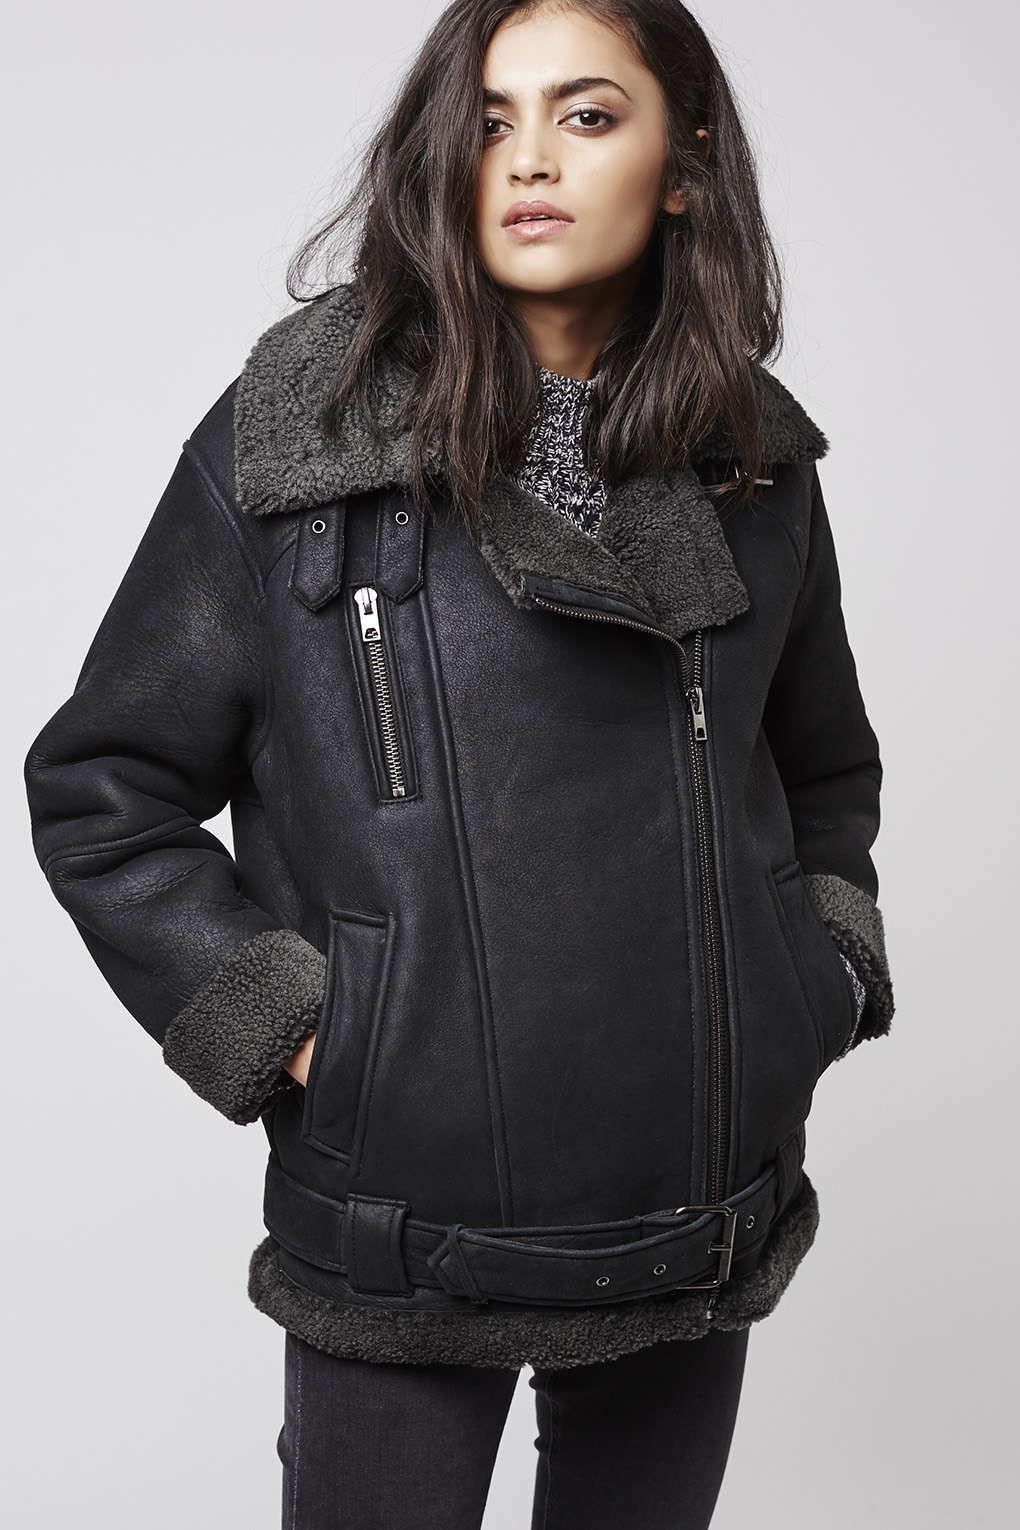 This Topshop Premium Shearling Biker Jacket is perfect for ...